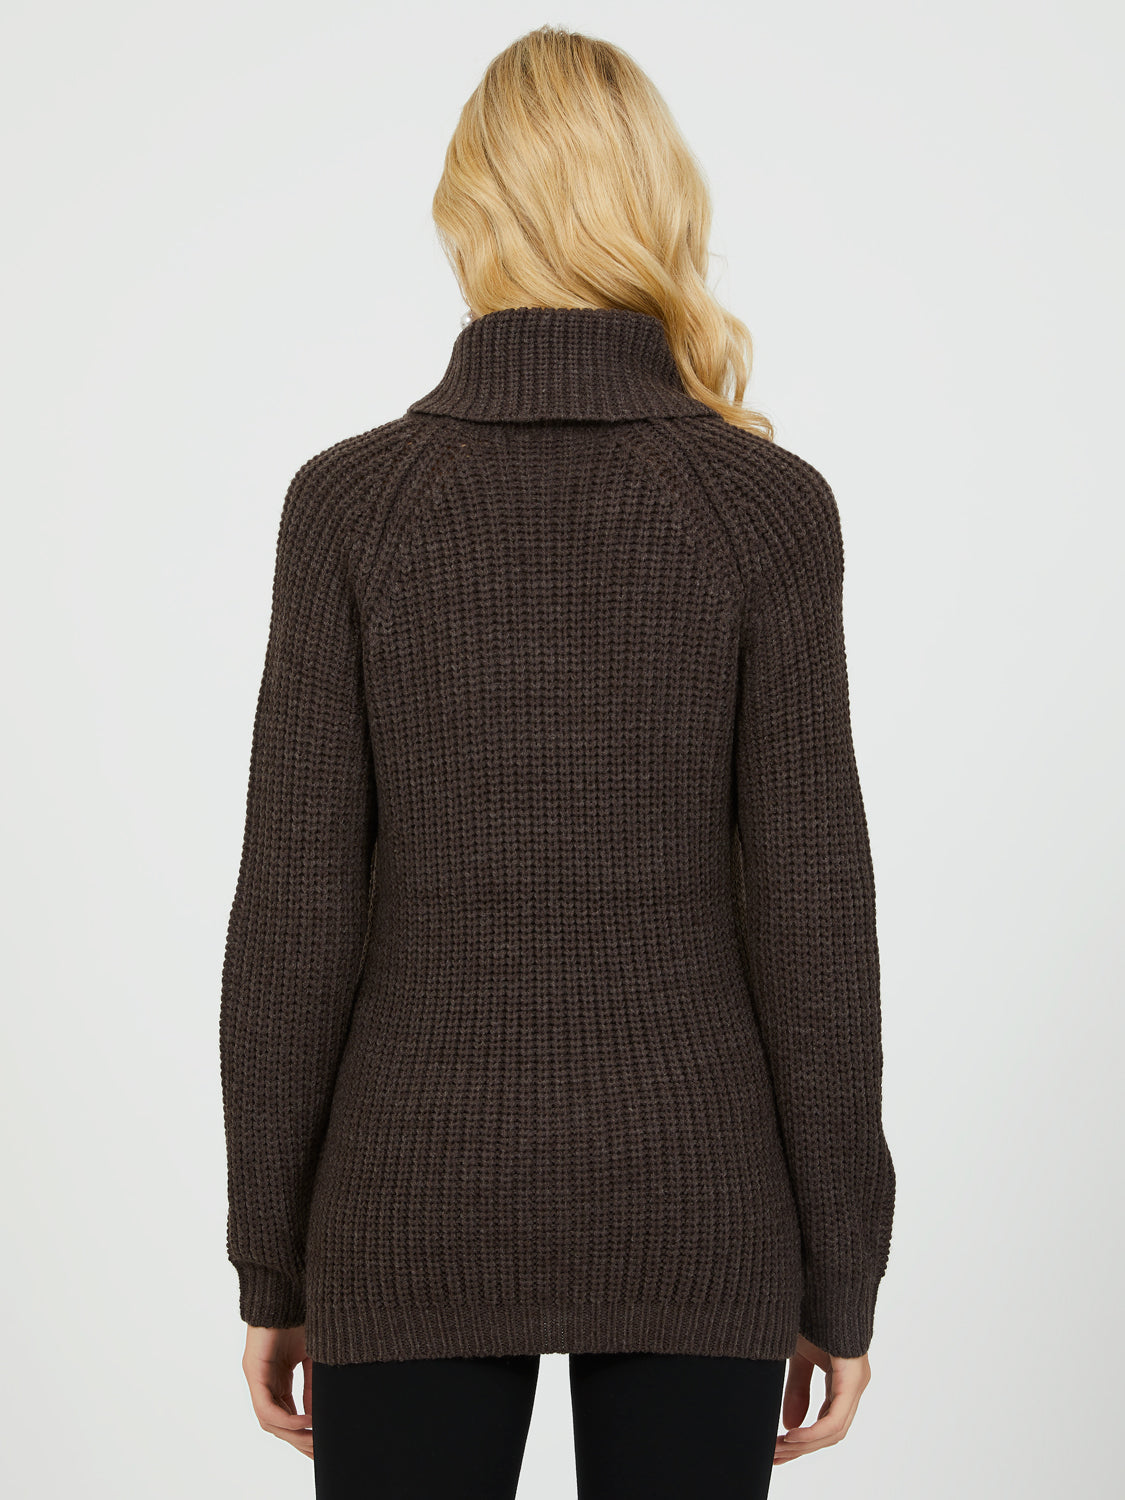 Long Sleeve Turtleneck Sweater